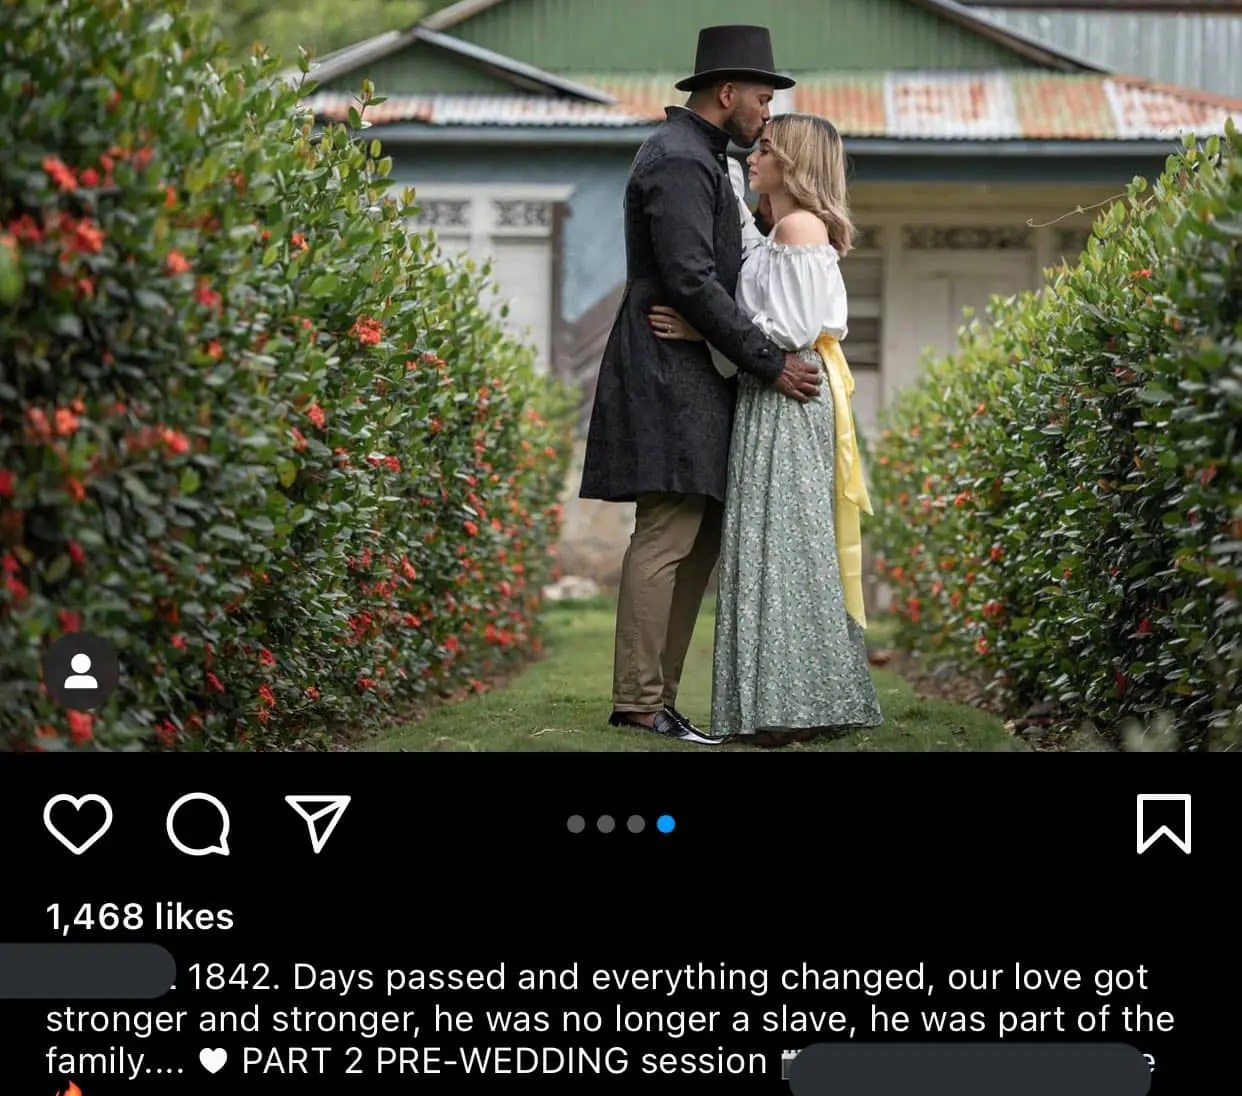 A picture of a Black man holding a White woman in an Antebellum-style photo.